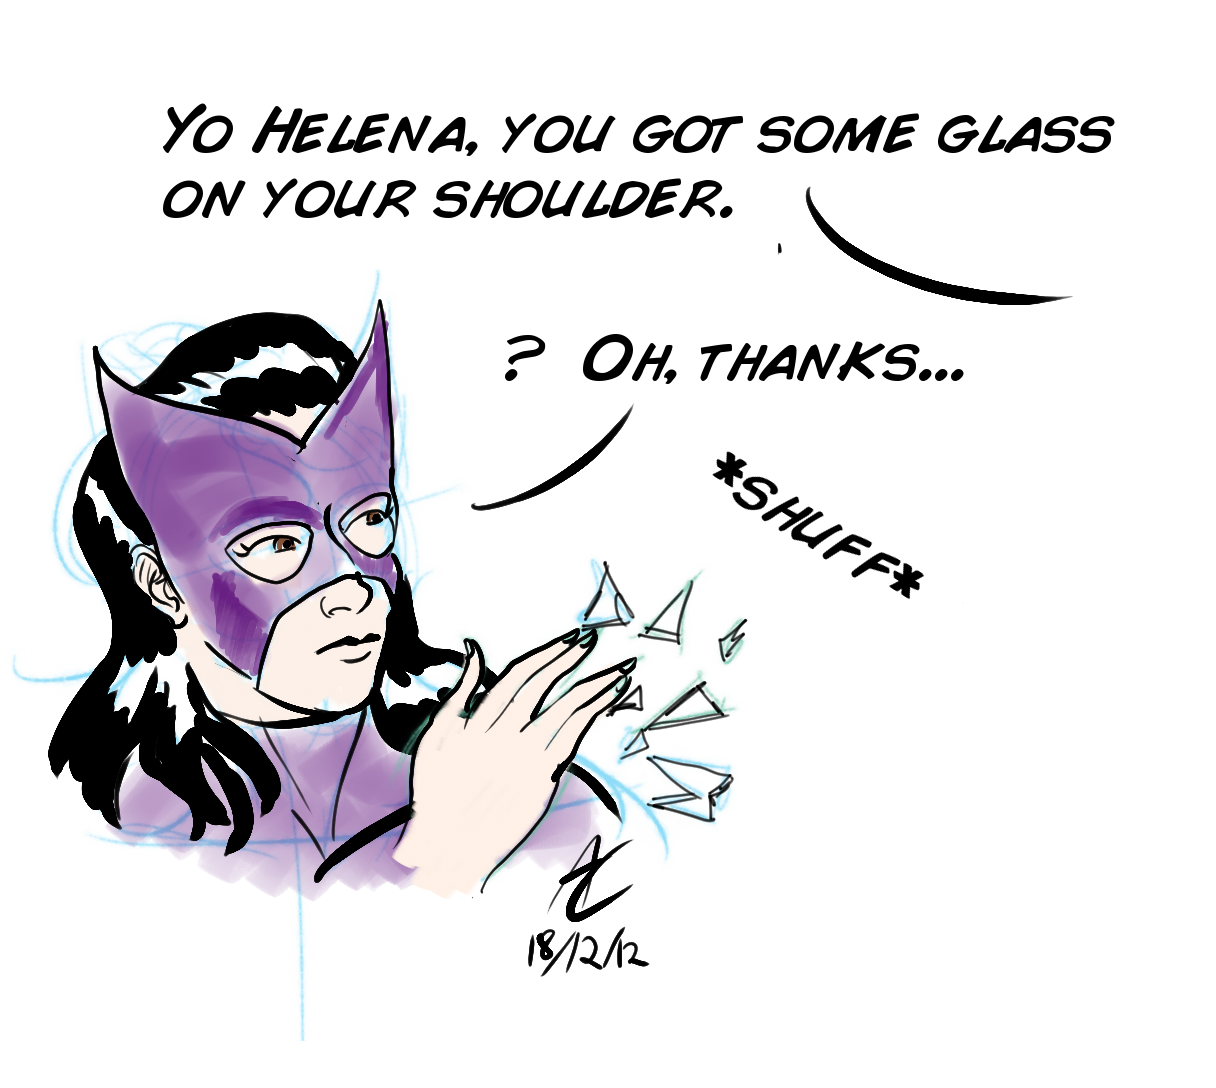 helenabertinellihuntress:  Helena rubs glass off of her the same way people rub dirt off their shoulders.  For gunshotglitter who runs the Helena Bertinelli Huntress blog and inspired this goofy little sketch.